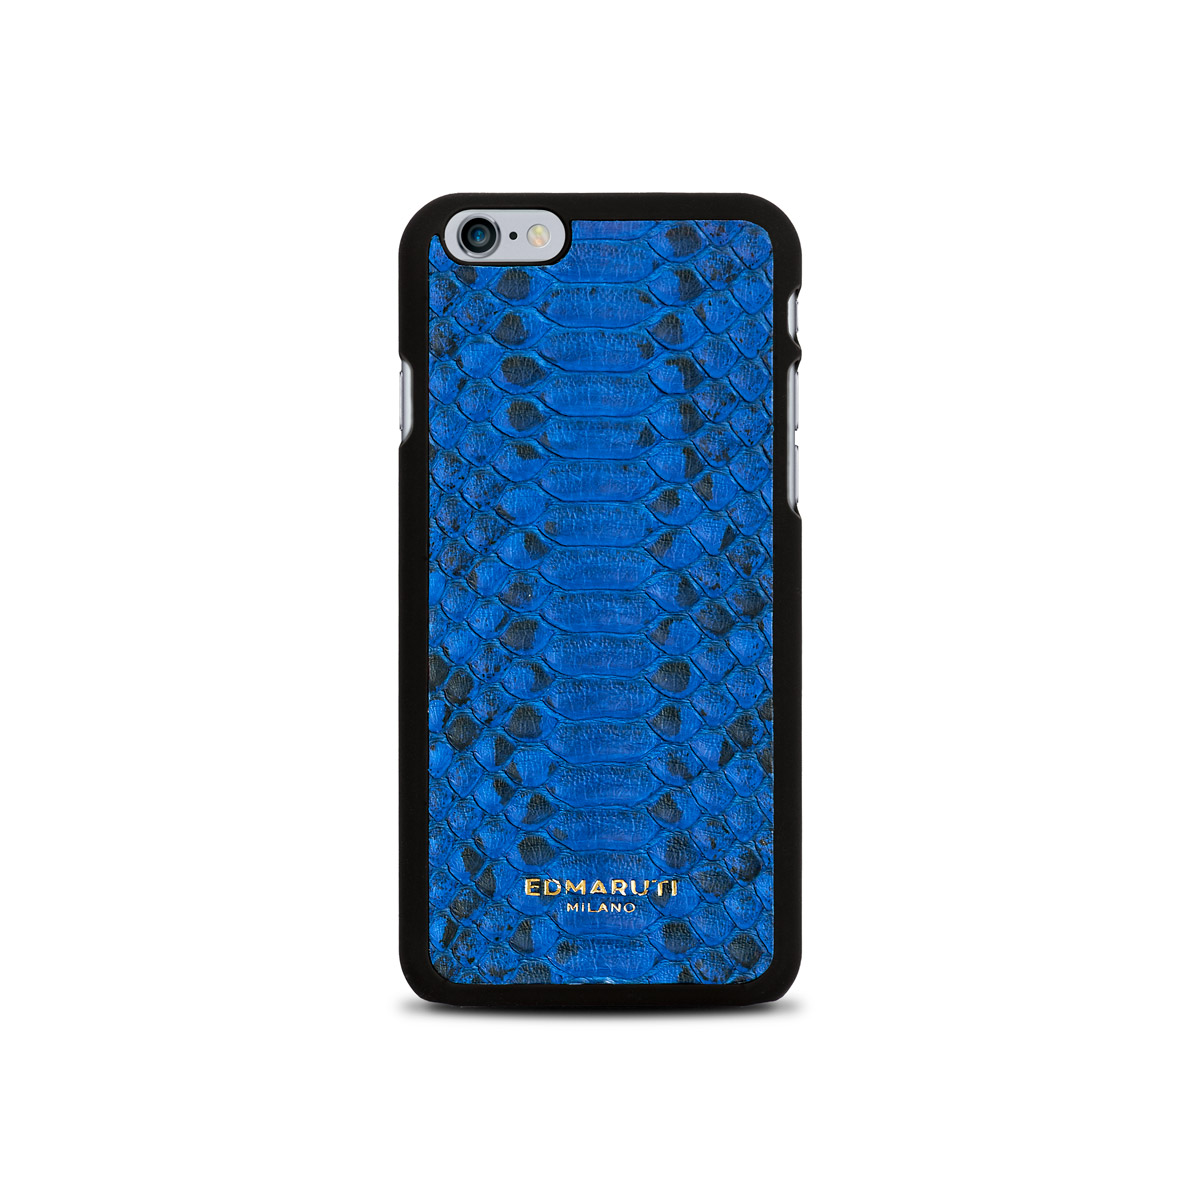 phone cases iphone 6 iphone 6 6s python blue edmaruti 2315